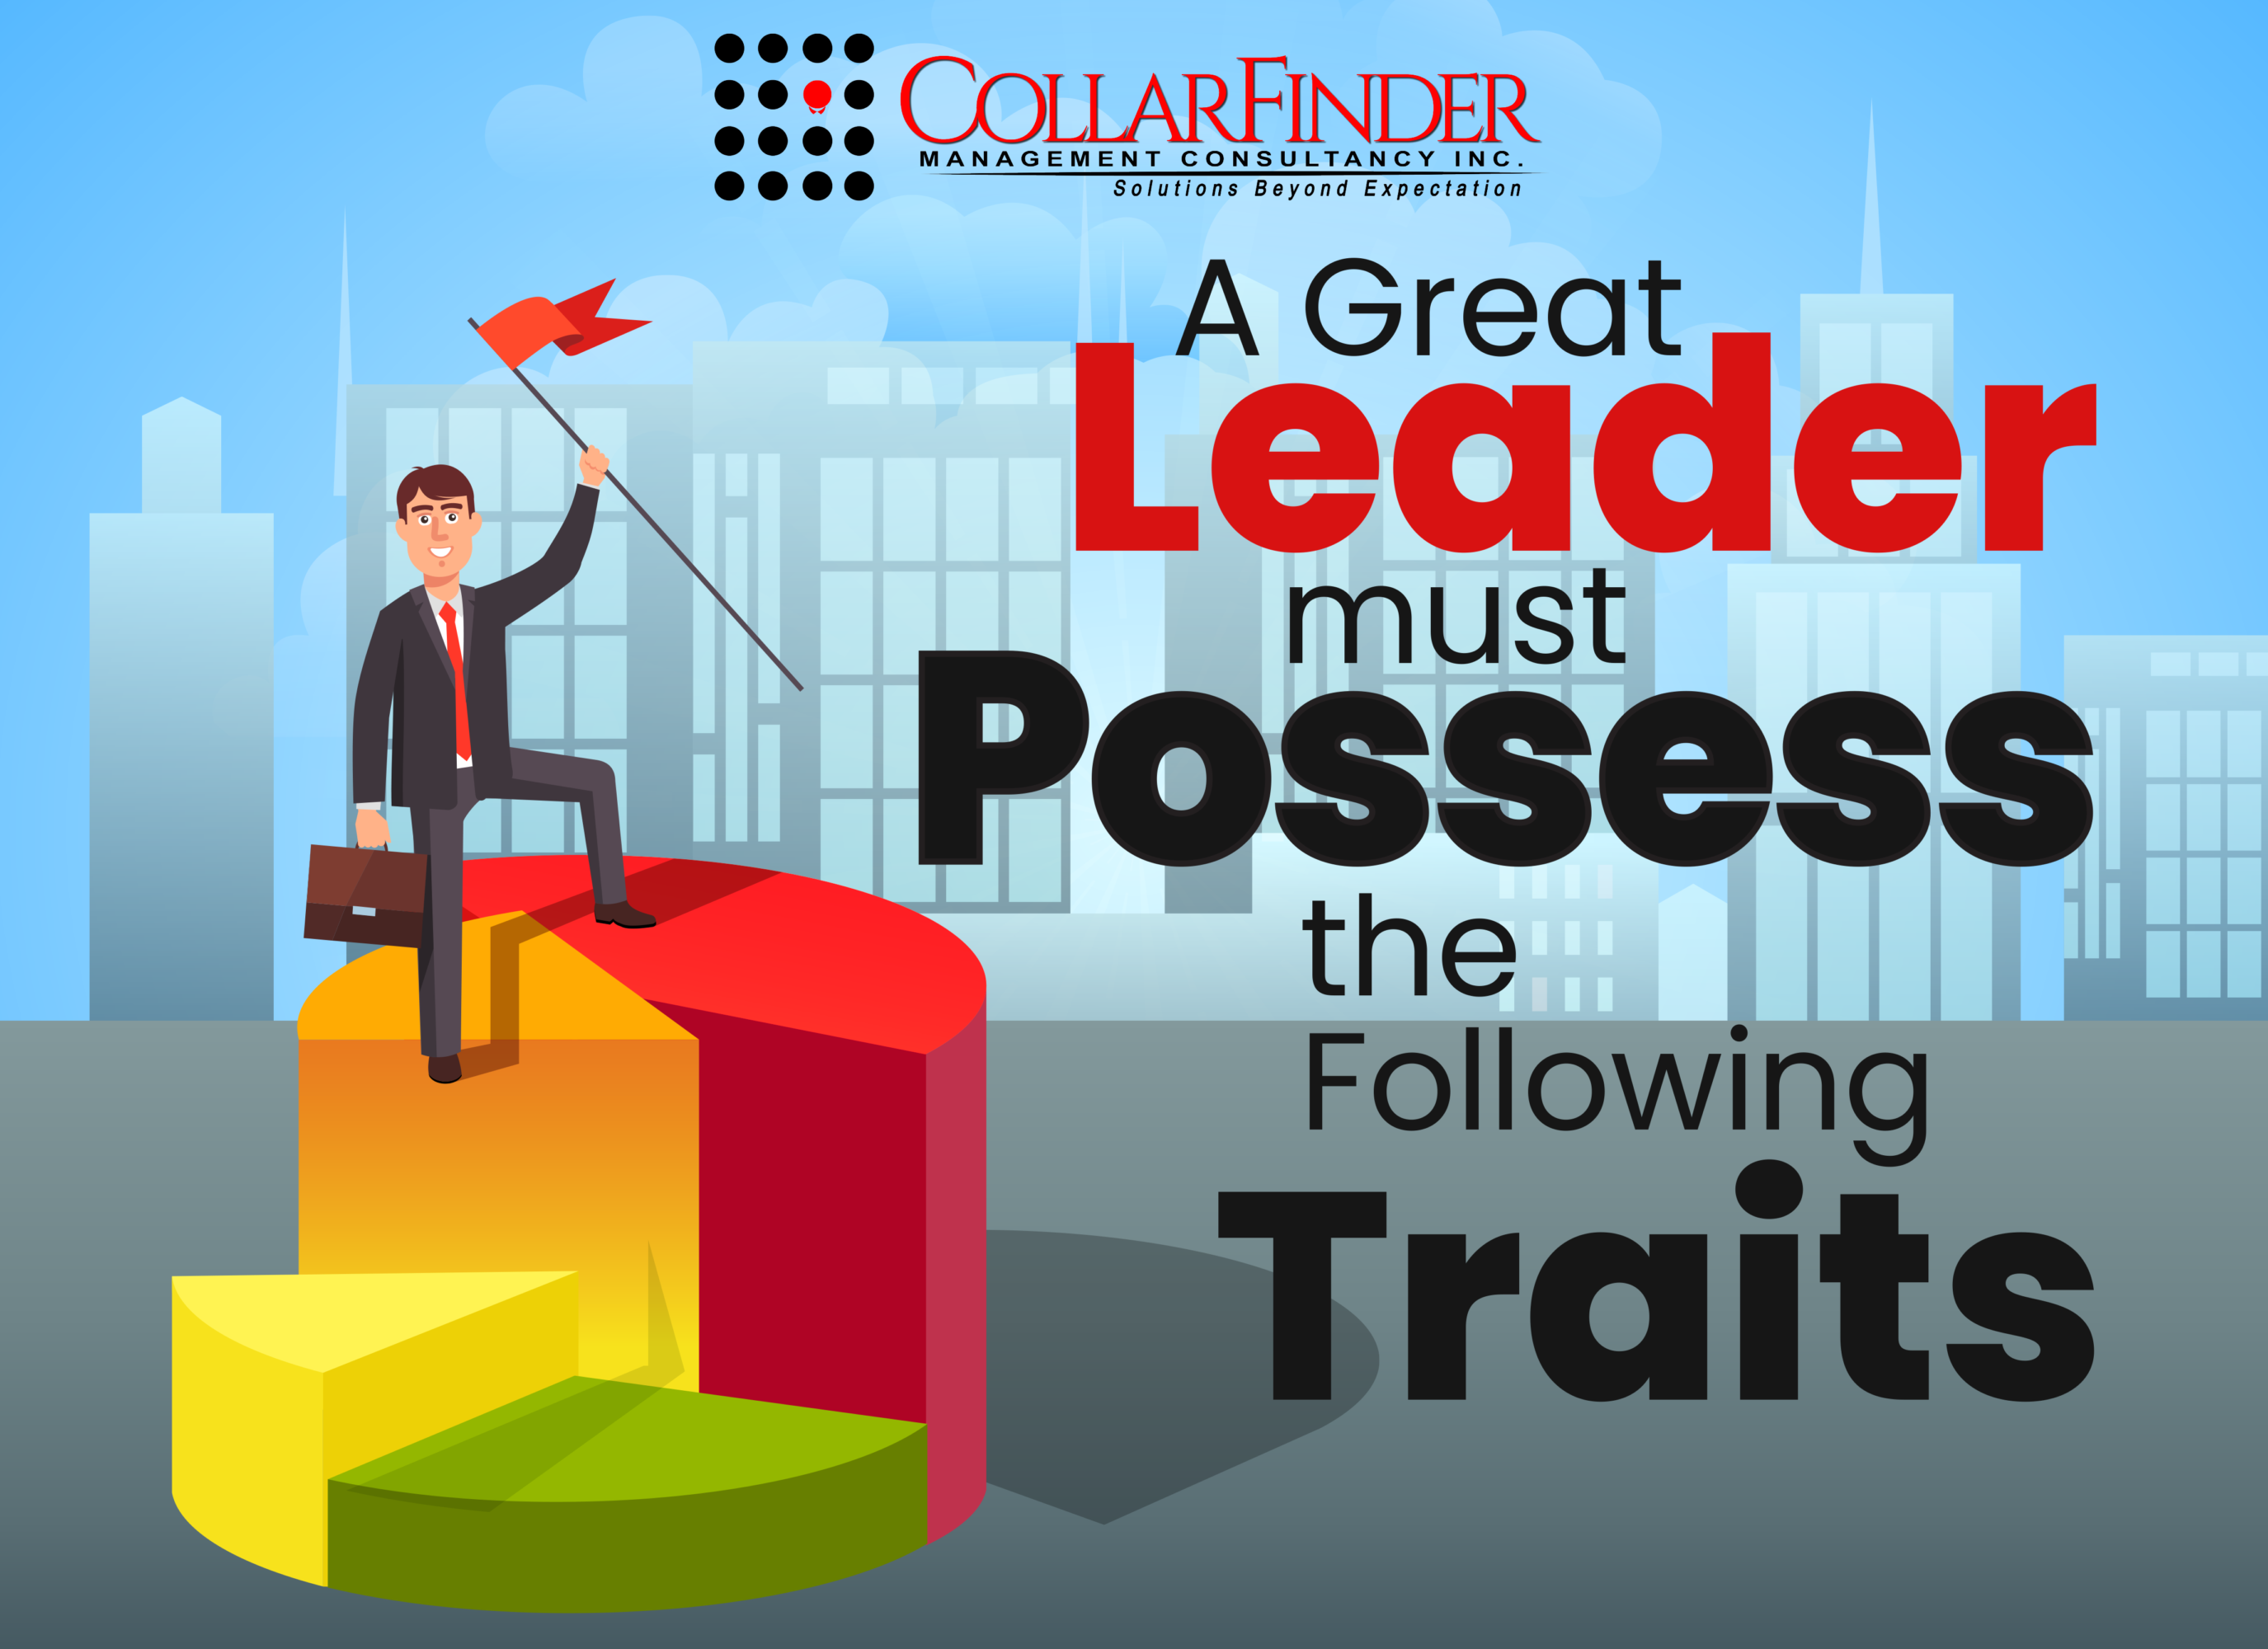 A Great Leader Must Possess the Following Traits